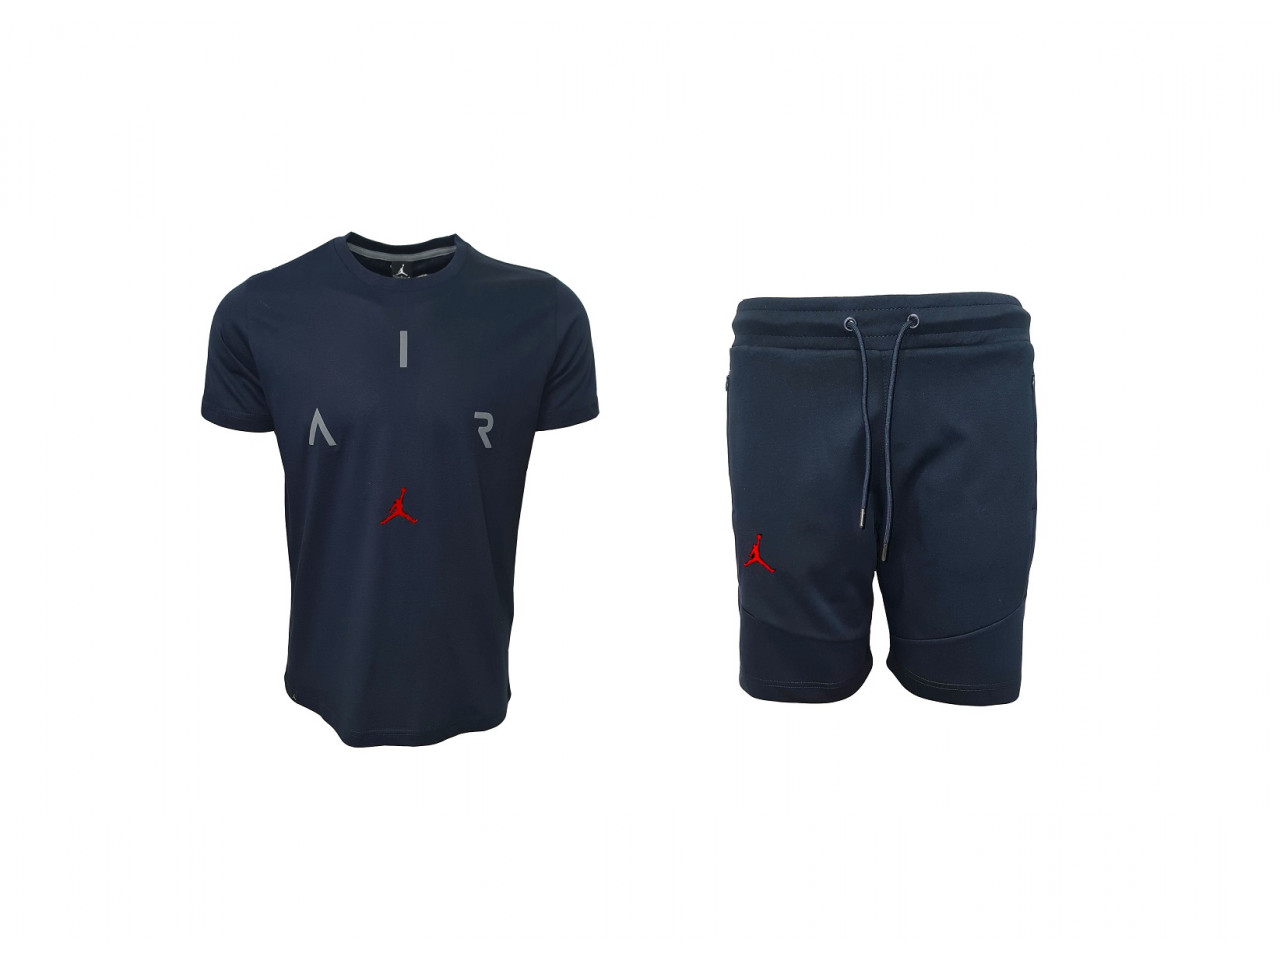 Nike AIR Jordan Shorts+ T-shirt Dark Blue